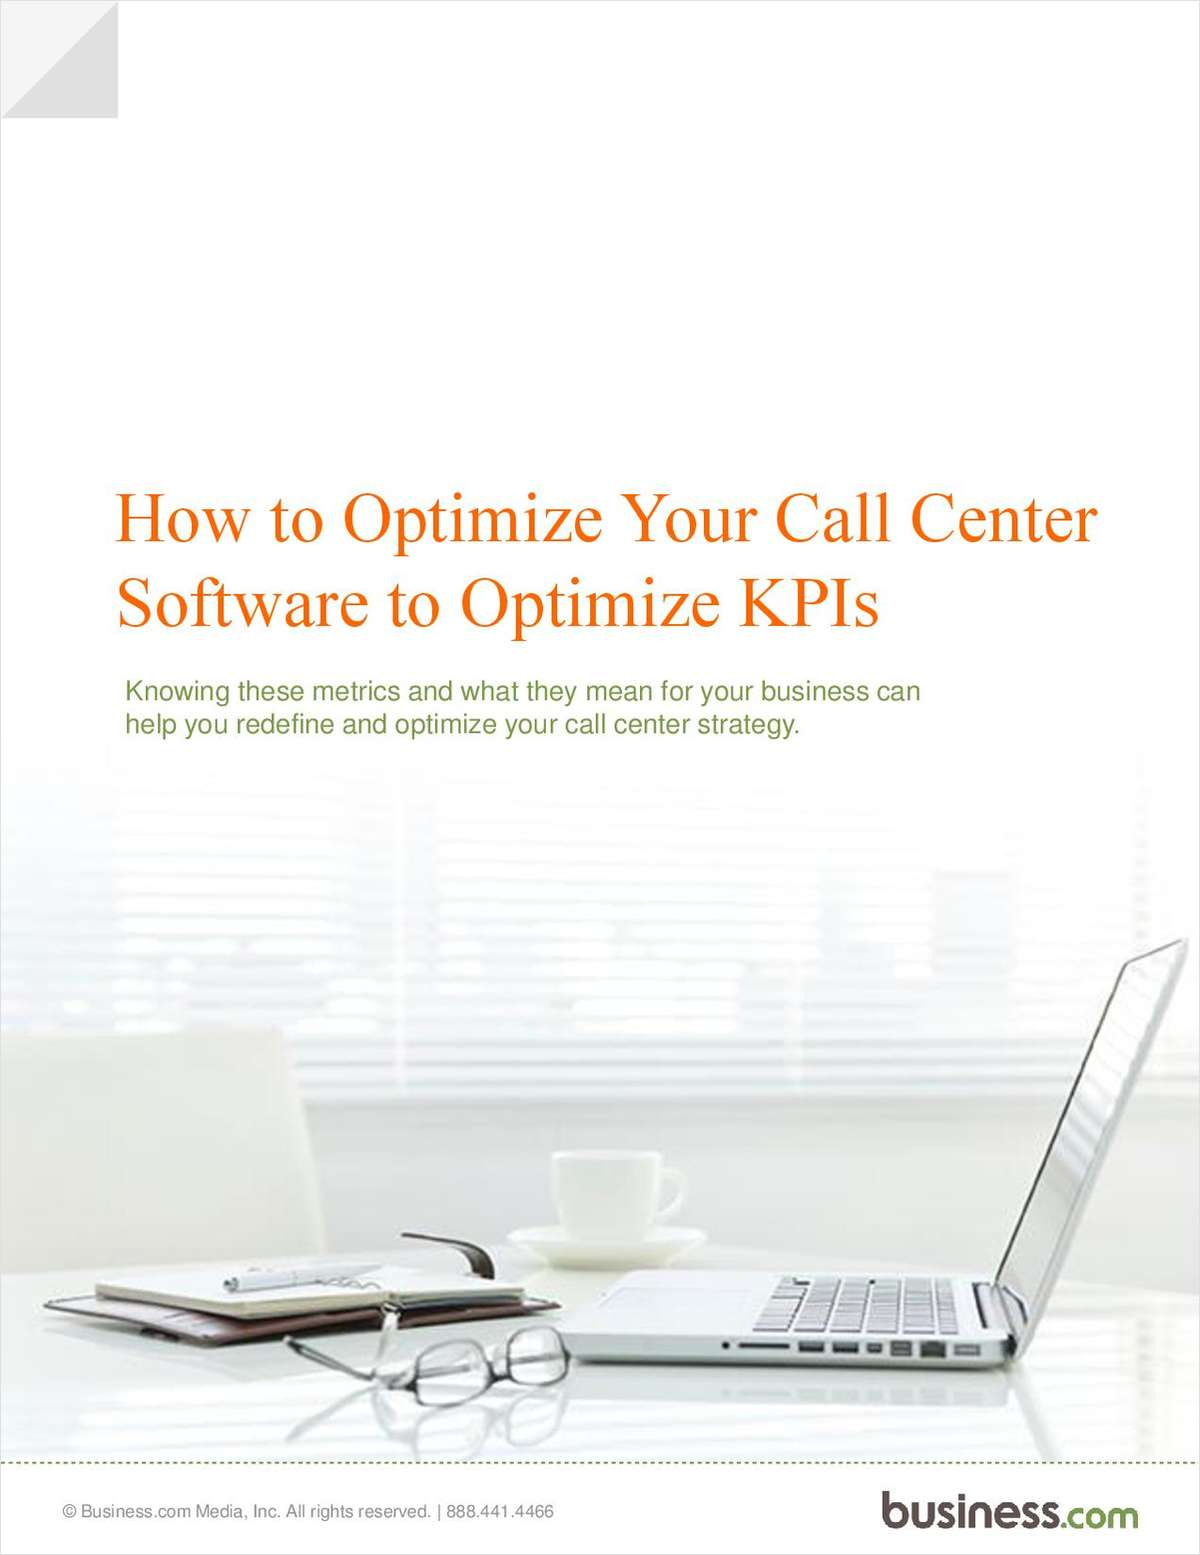 How to Optimize Your Call Center Software to Optimize KPIs